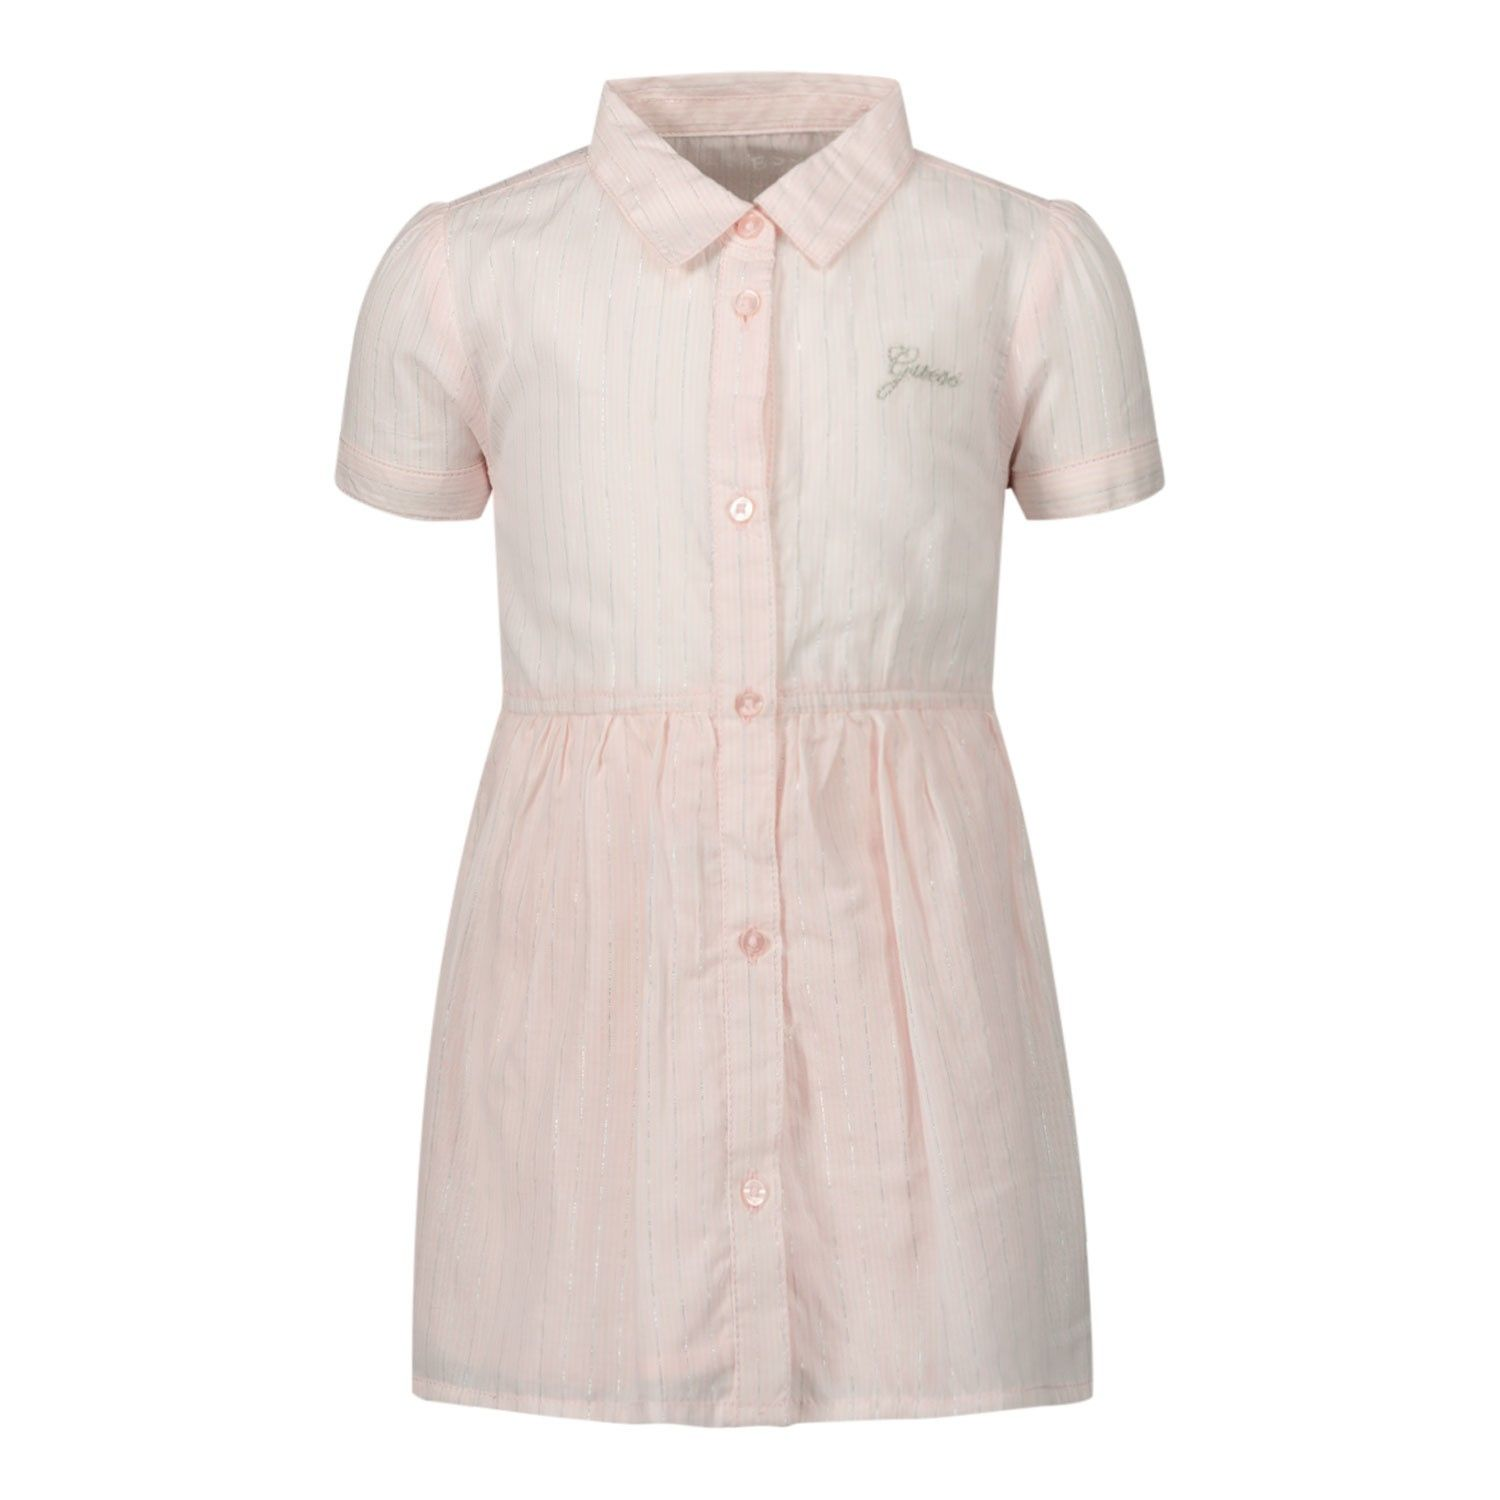 Picture of Guess A01K11 baby dress light pink